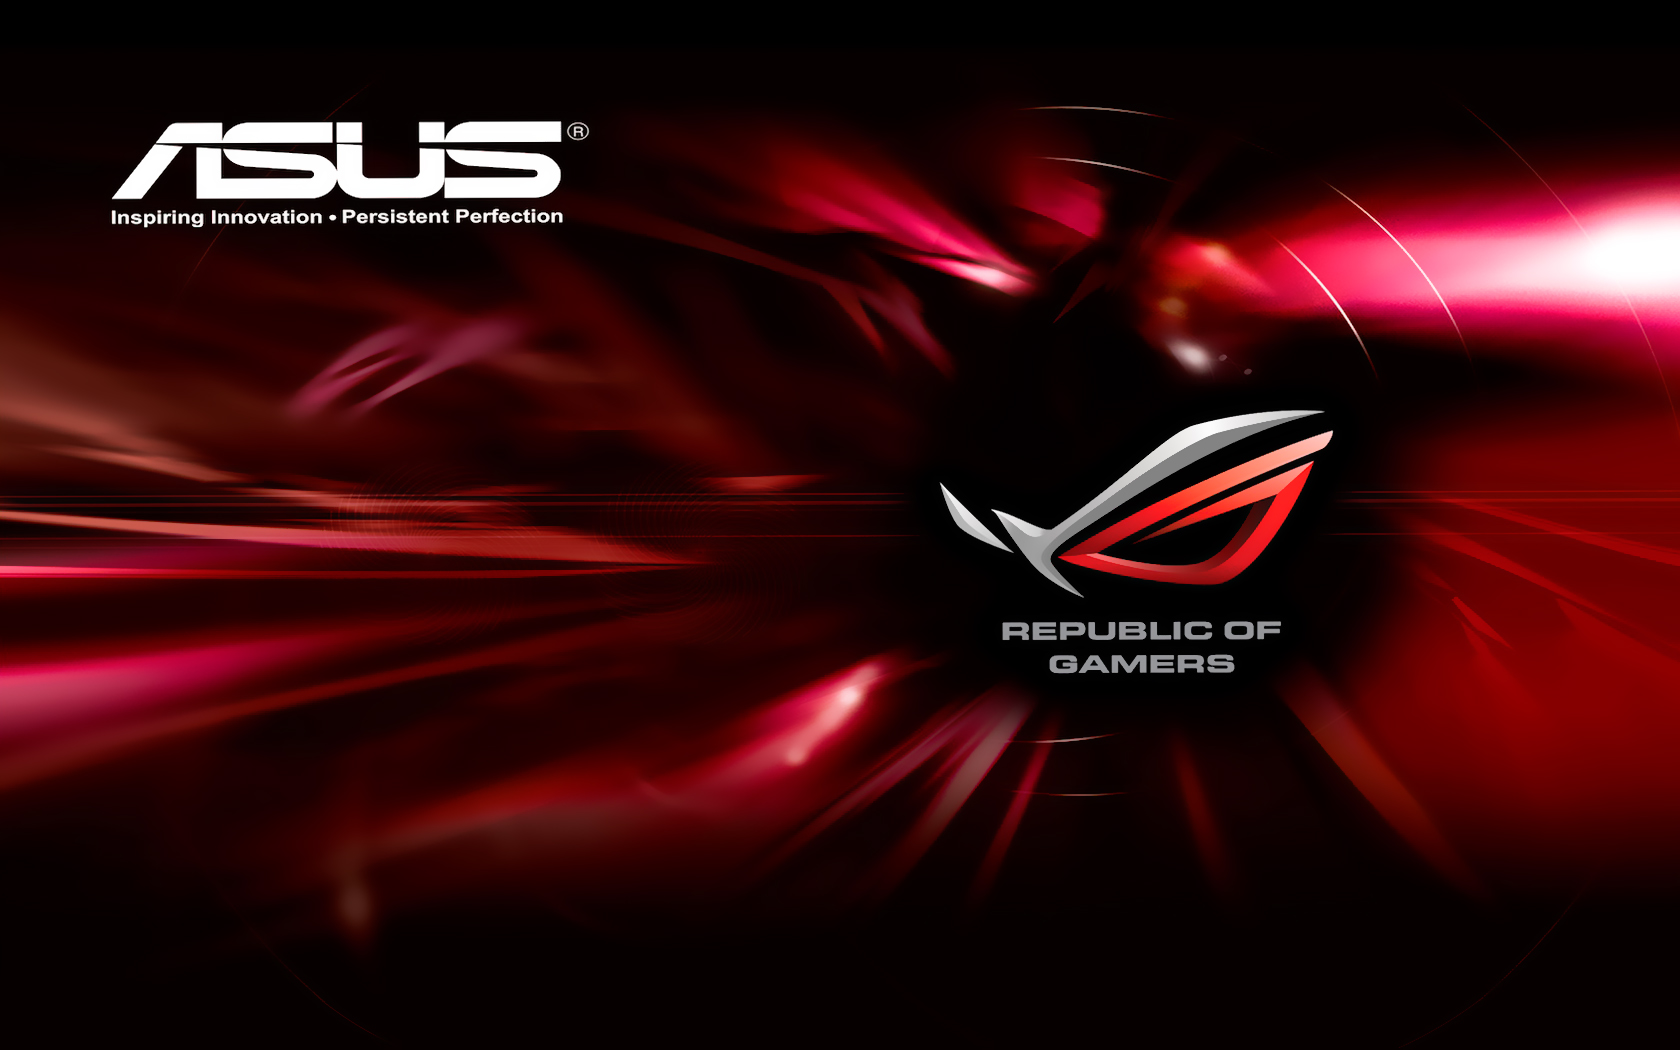 Asus Computer Wallpapers Desktop Backgrounds 1680x1050 ID177613 1680x1050